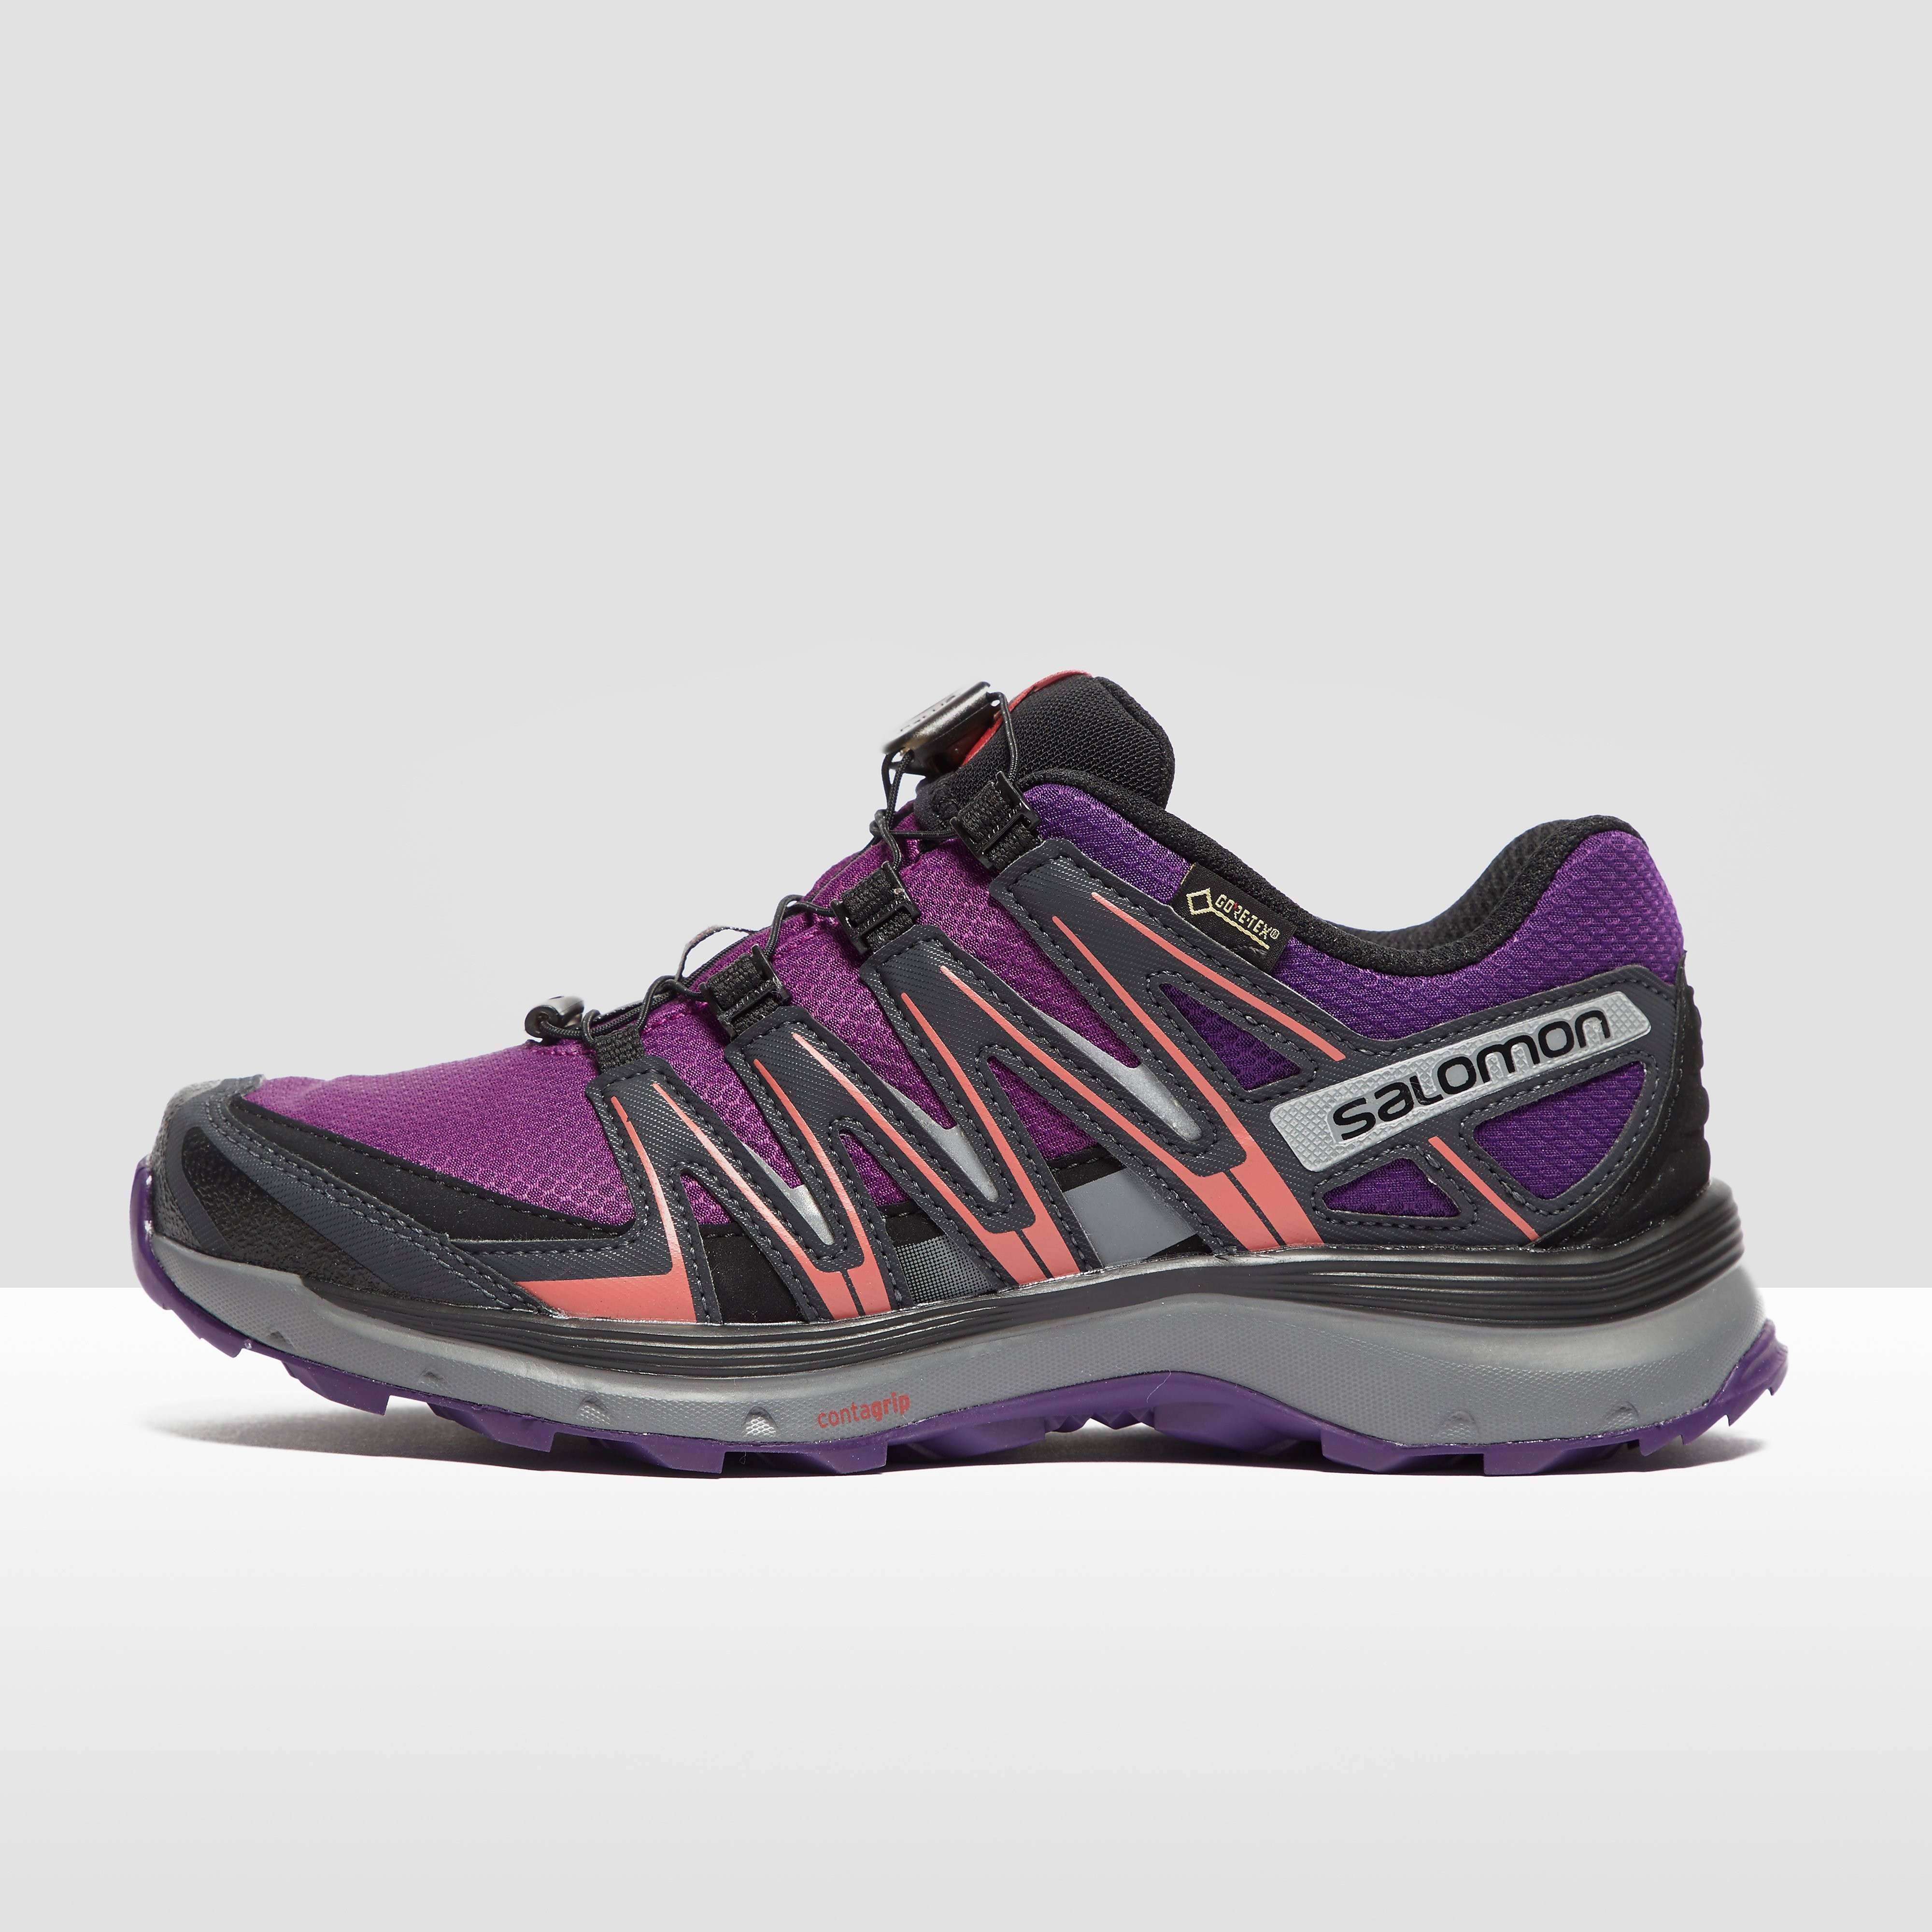 Salomon XA Lite GTX Women's Trail Running Shoes